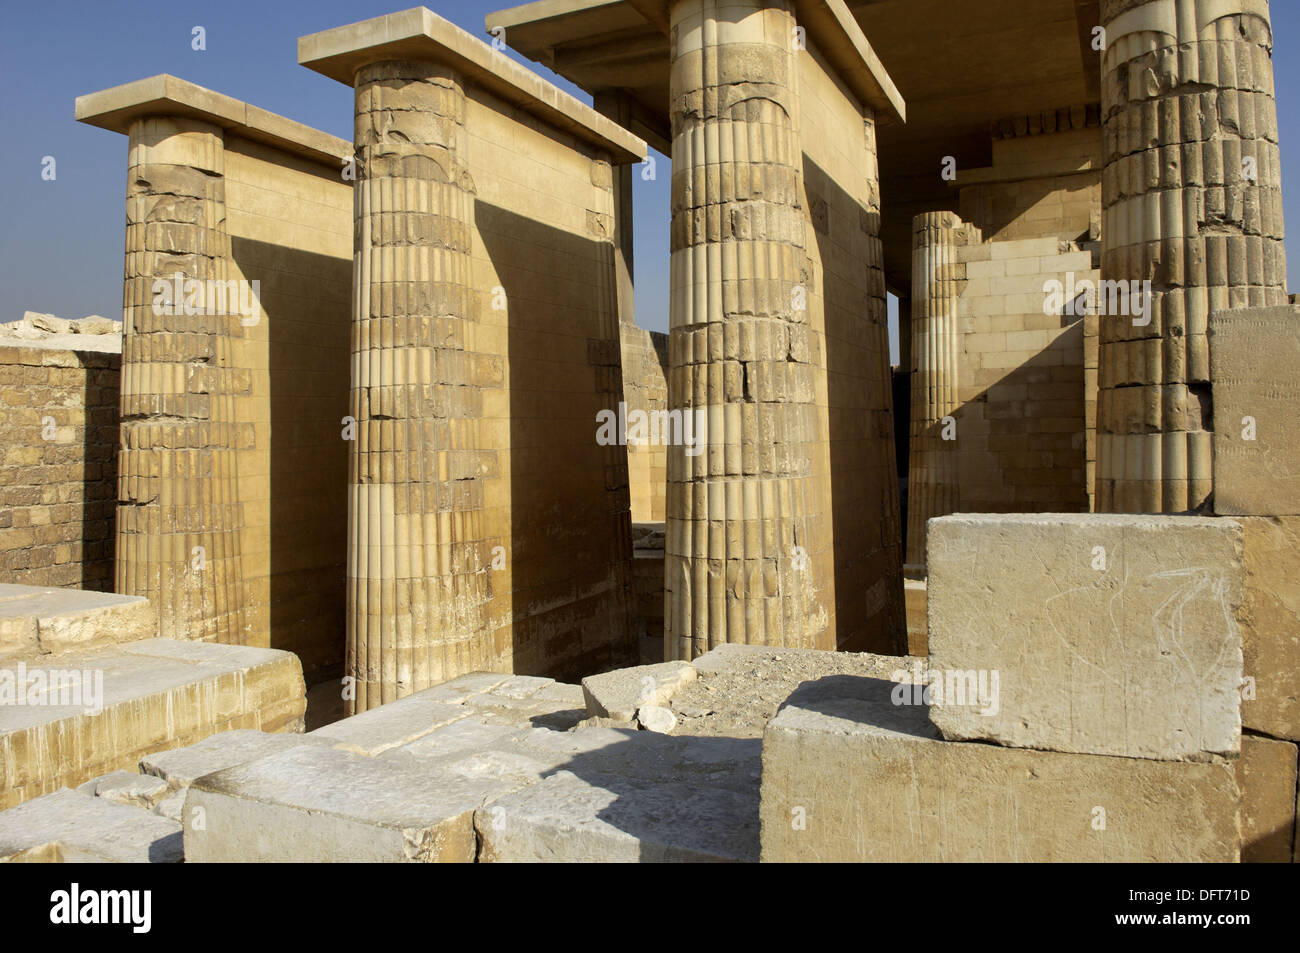 The Mortuary Im Genes De Stock The Mortuary Fotos De Stock Alamy # Saqqara Muebles Y Decoracion